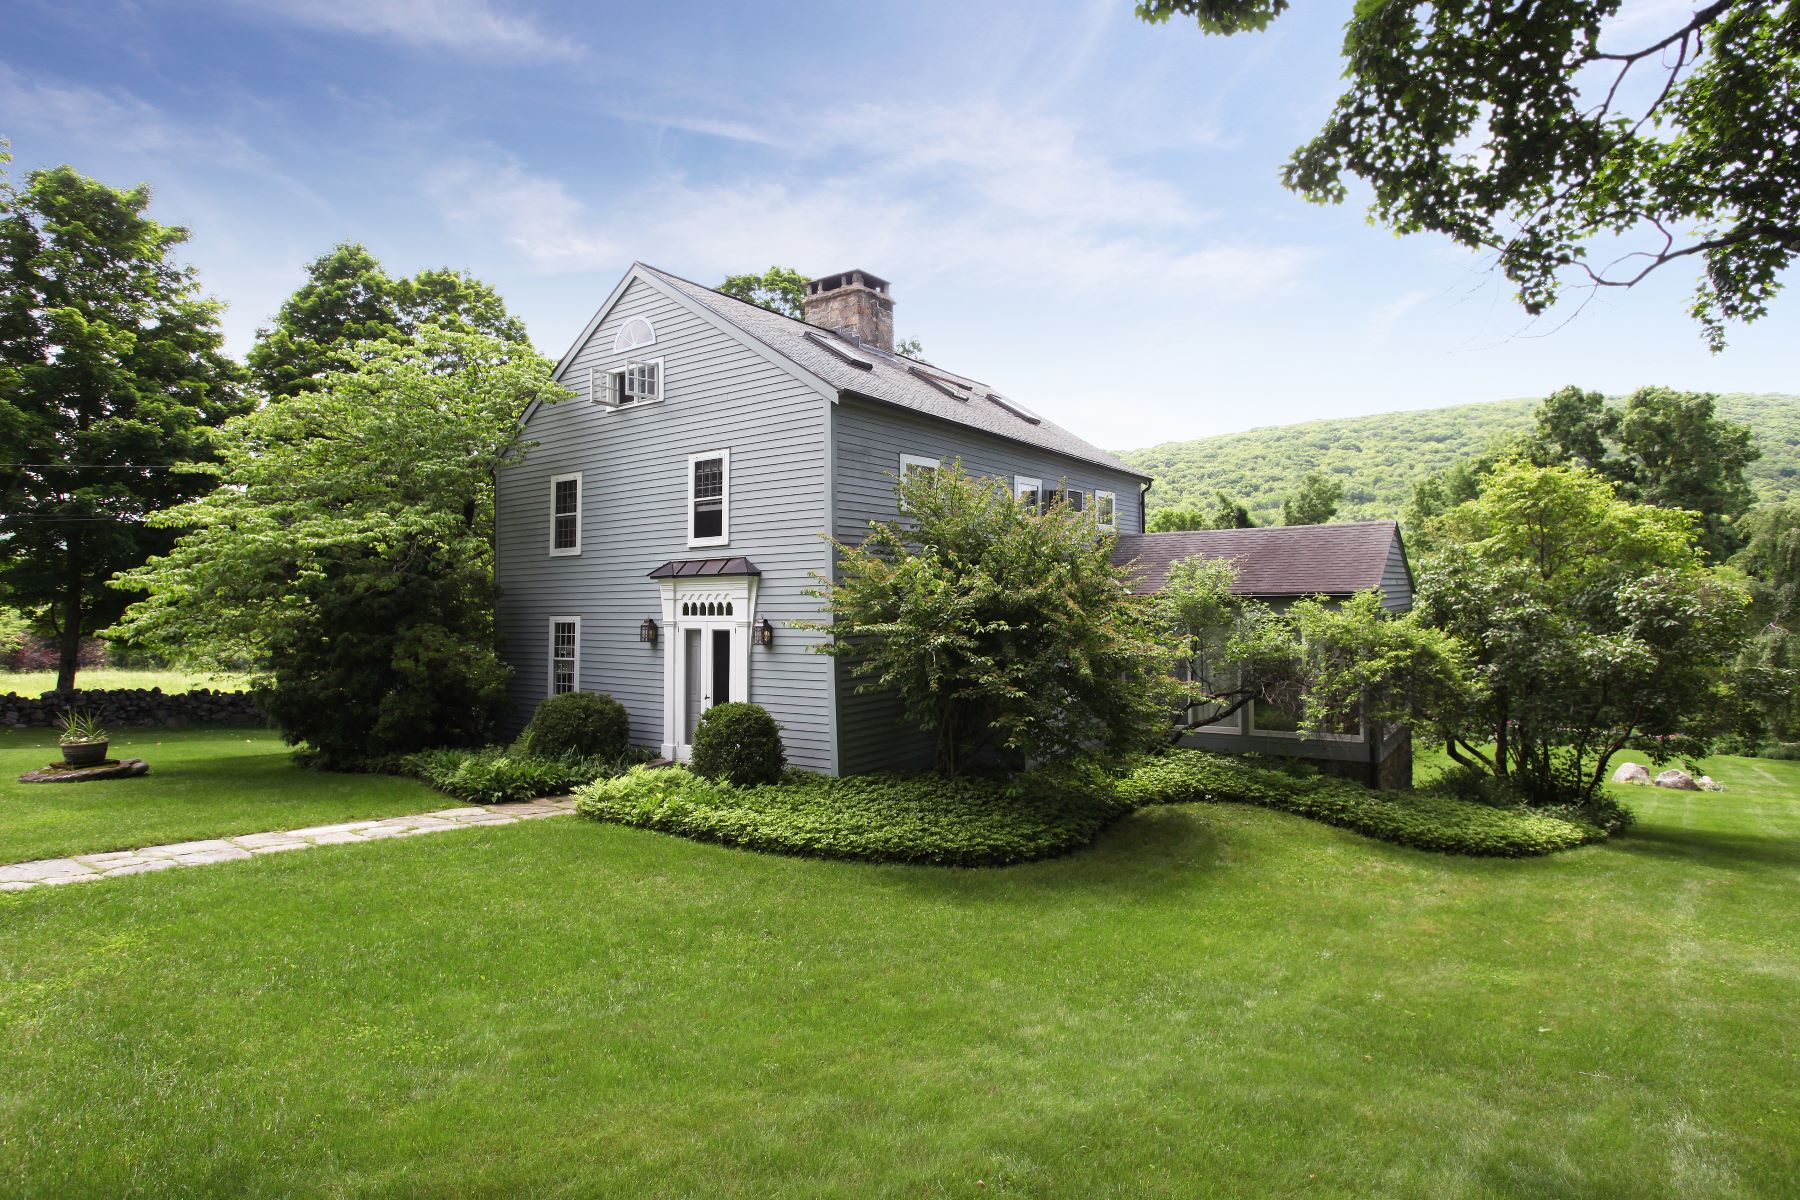 Villa per Vendita alle ore The Samuel Hill House 64 Cherniske New Milford, Connecticut 06776 Stati Uniti